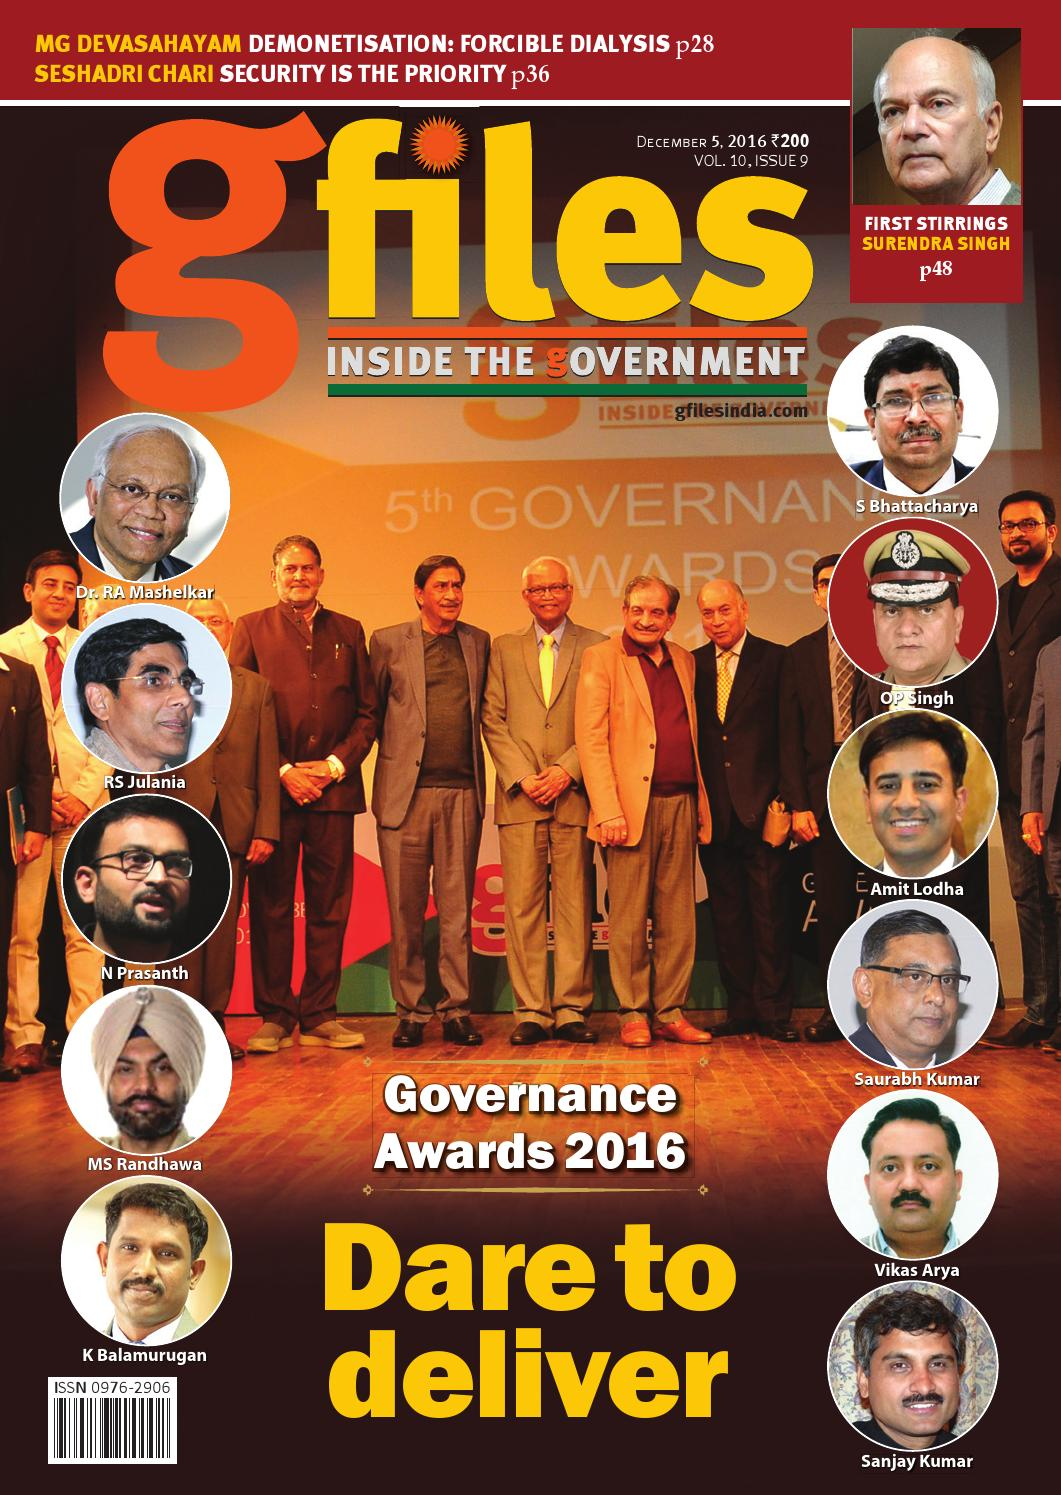 GFILES_DEC16 by gfiles - issuu